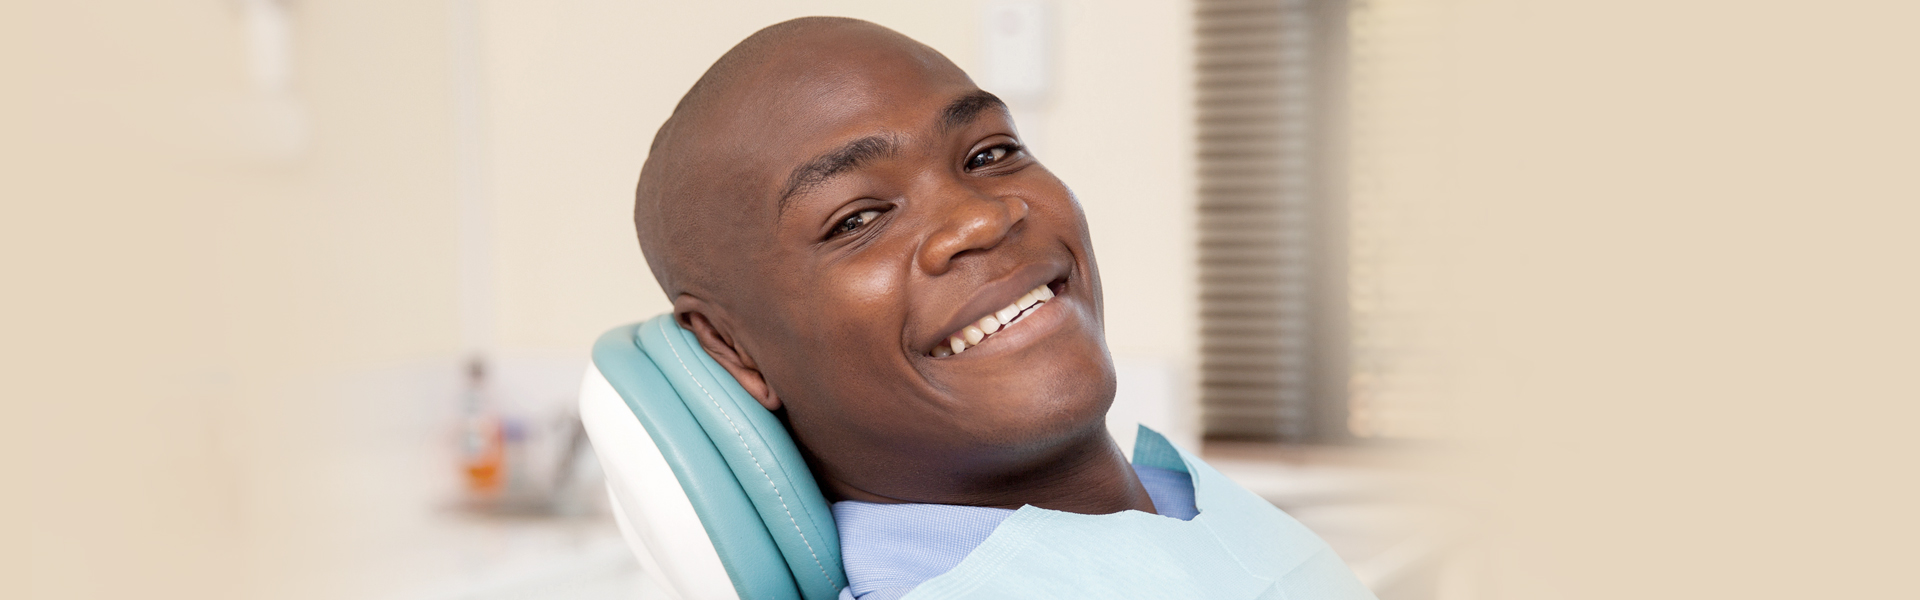 Dental Cleanings and Exams in Cupertino, CA